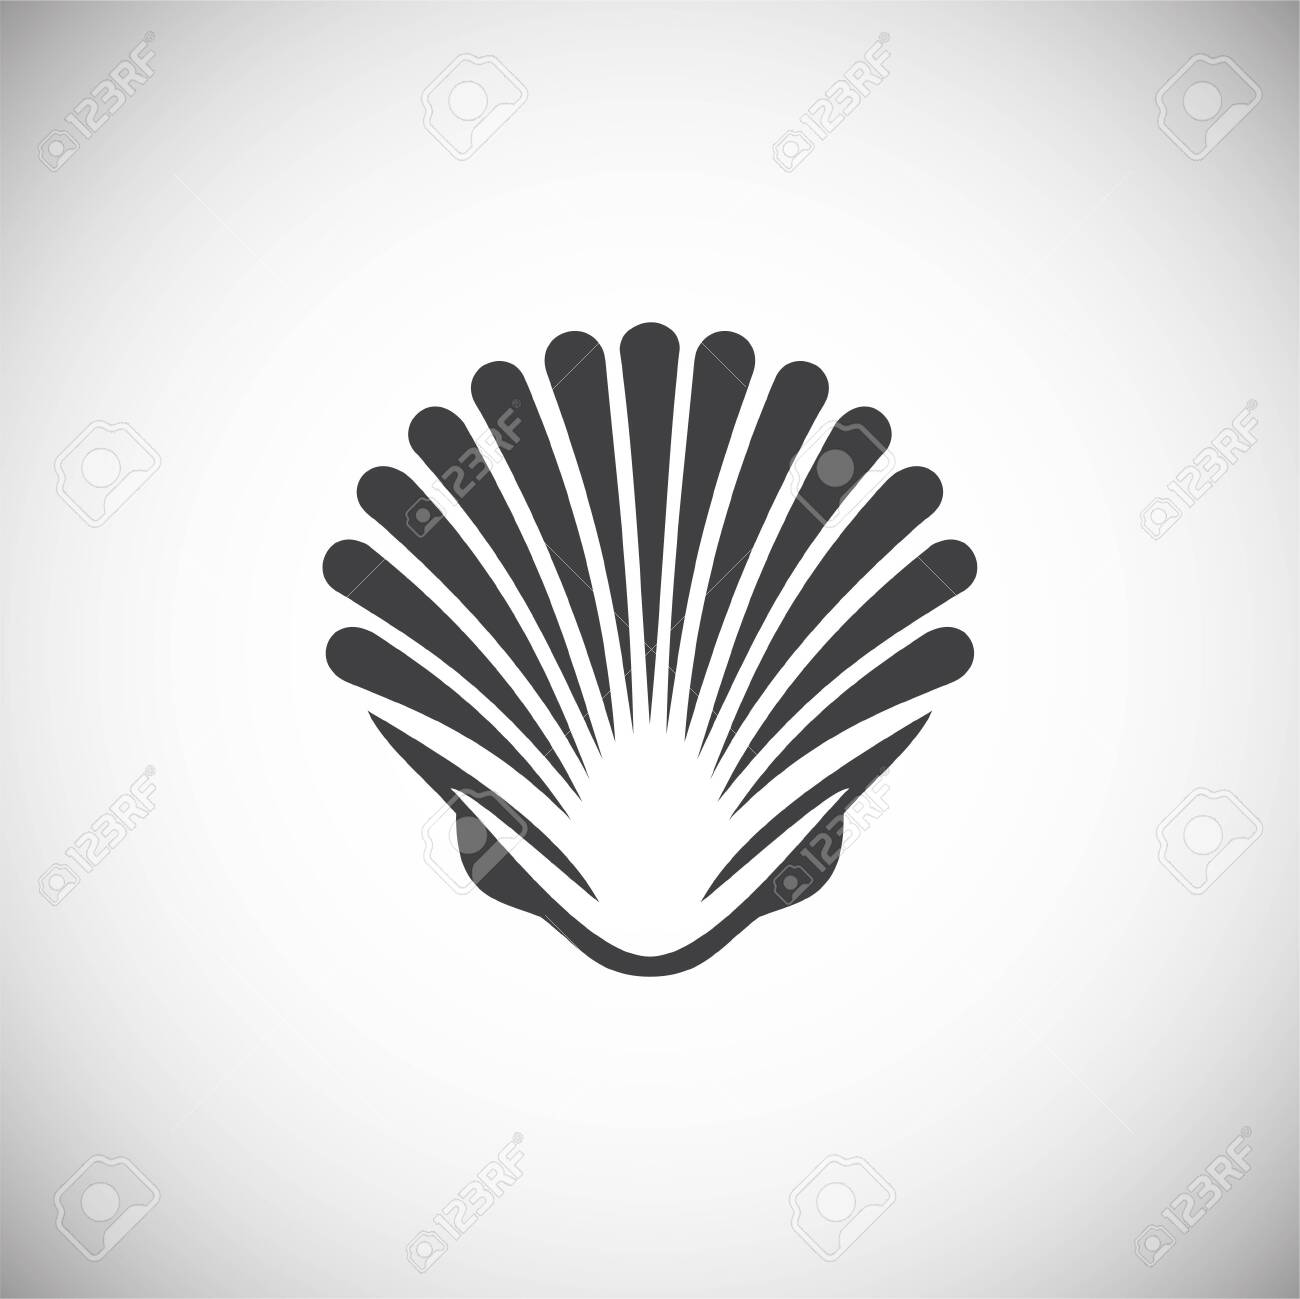 Seafood related icon on background for graphic and web design. Simple illustration. Internet concept symbol for website button or mobile app - 125185856